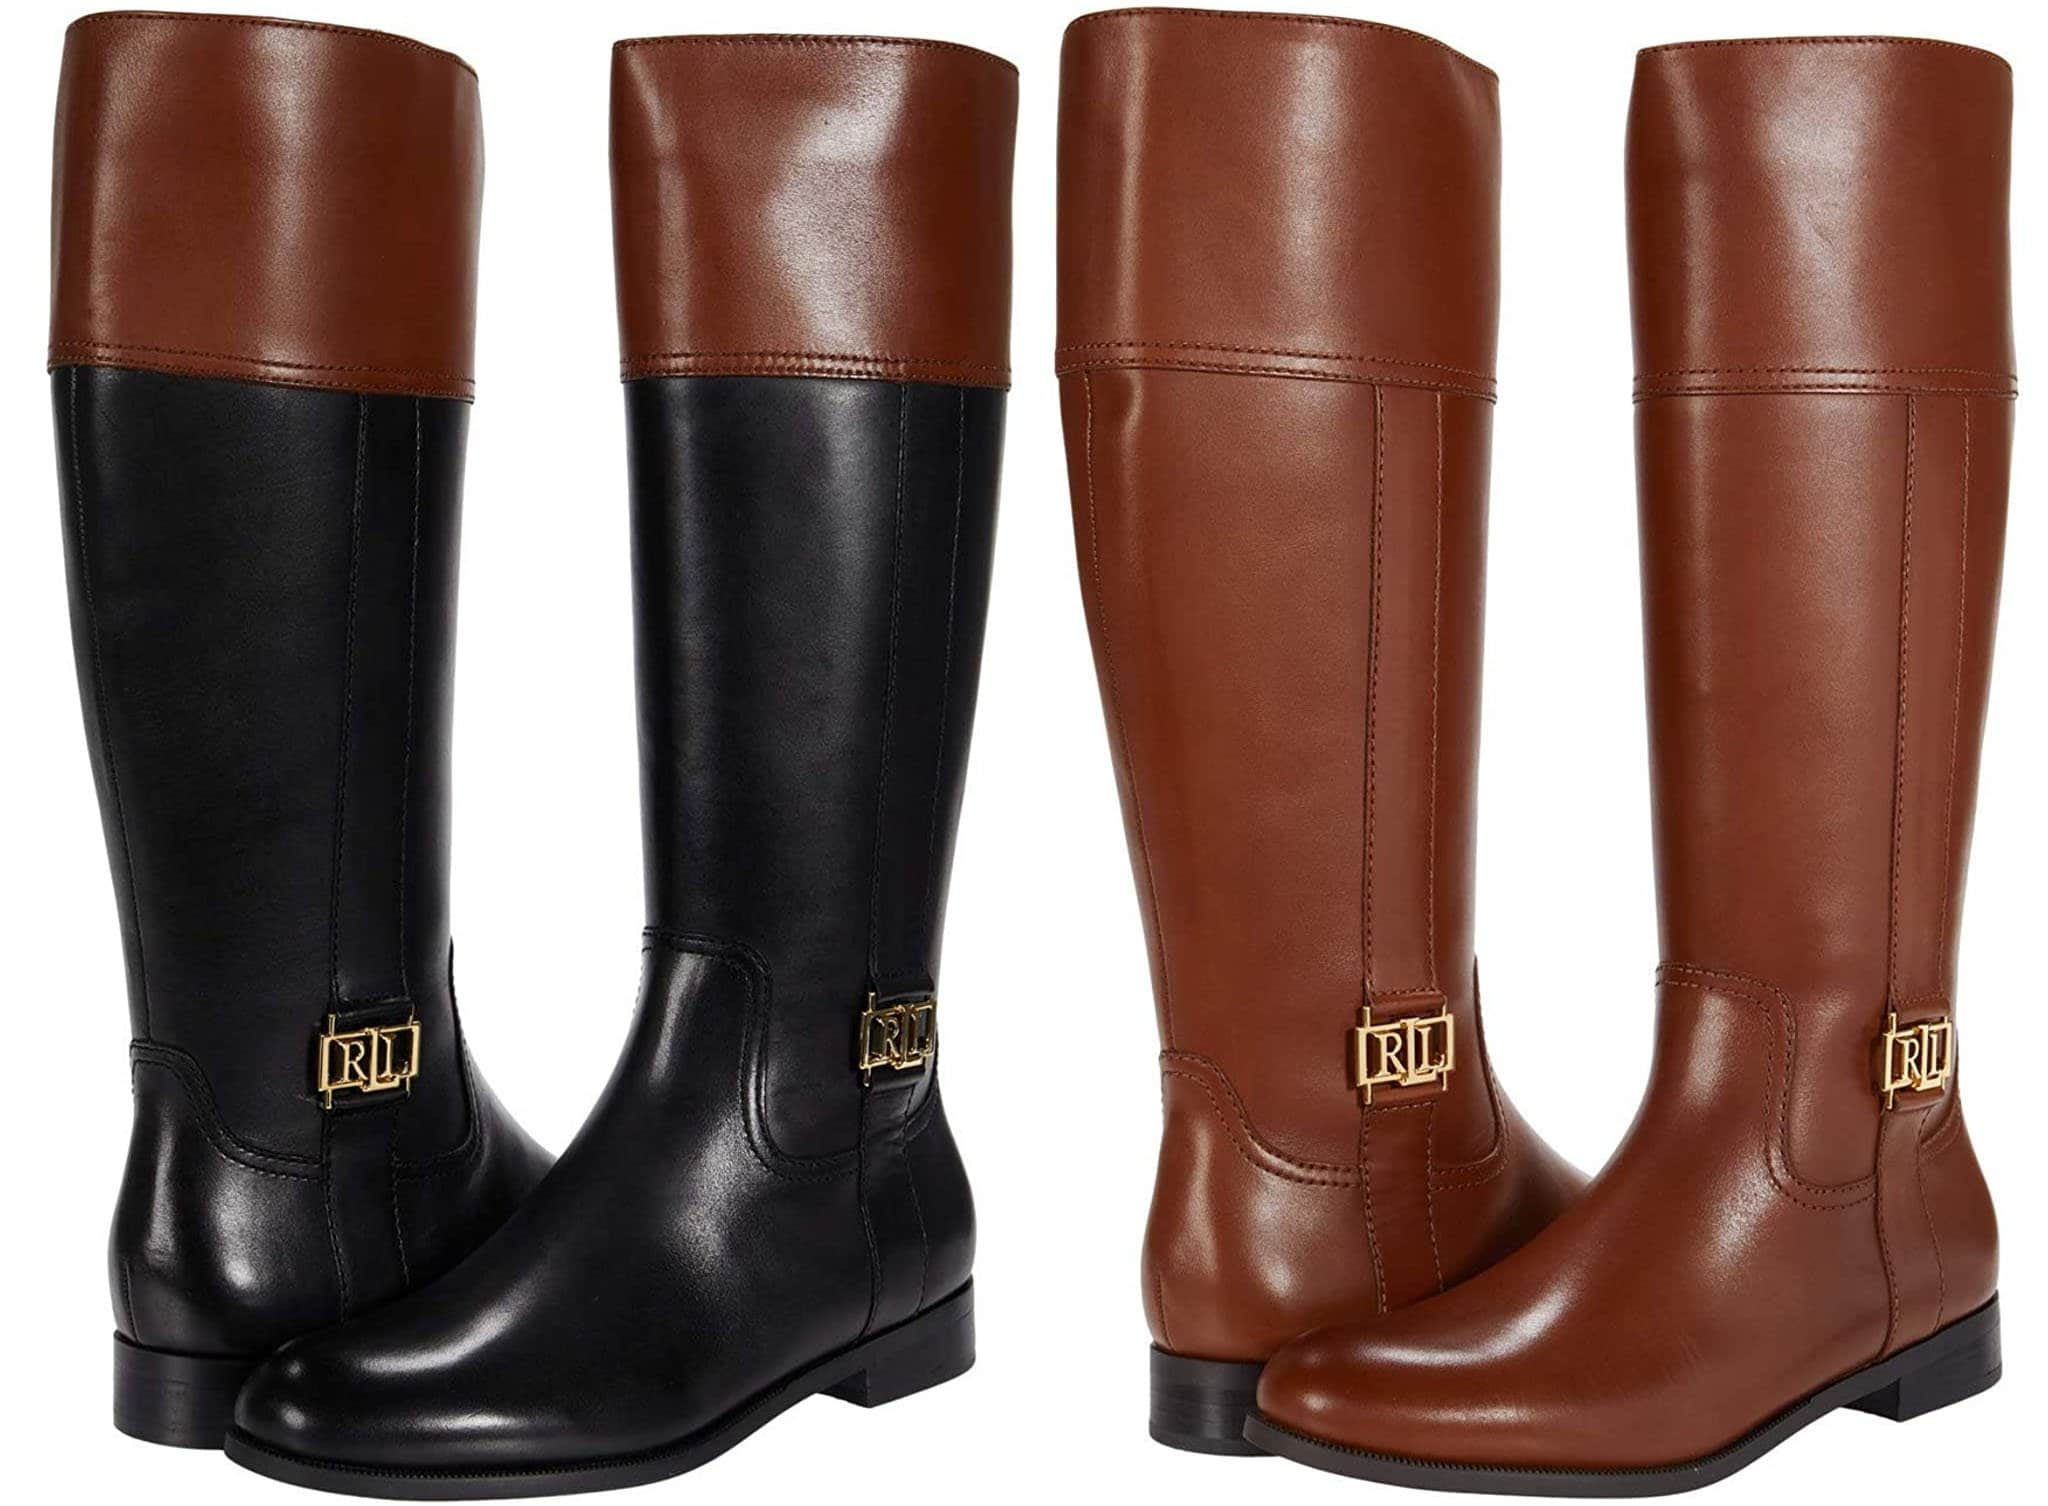 These boots are also available in black/deep saddle brown and deep saddle brown colorways